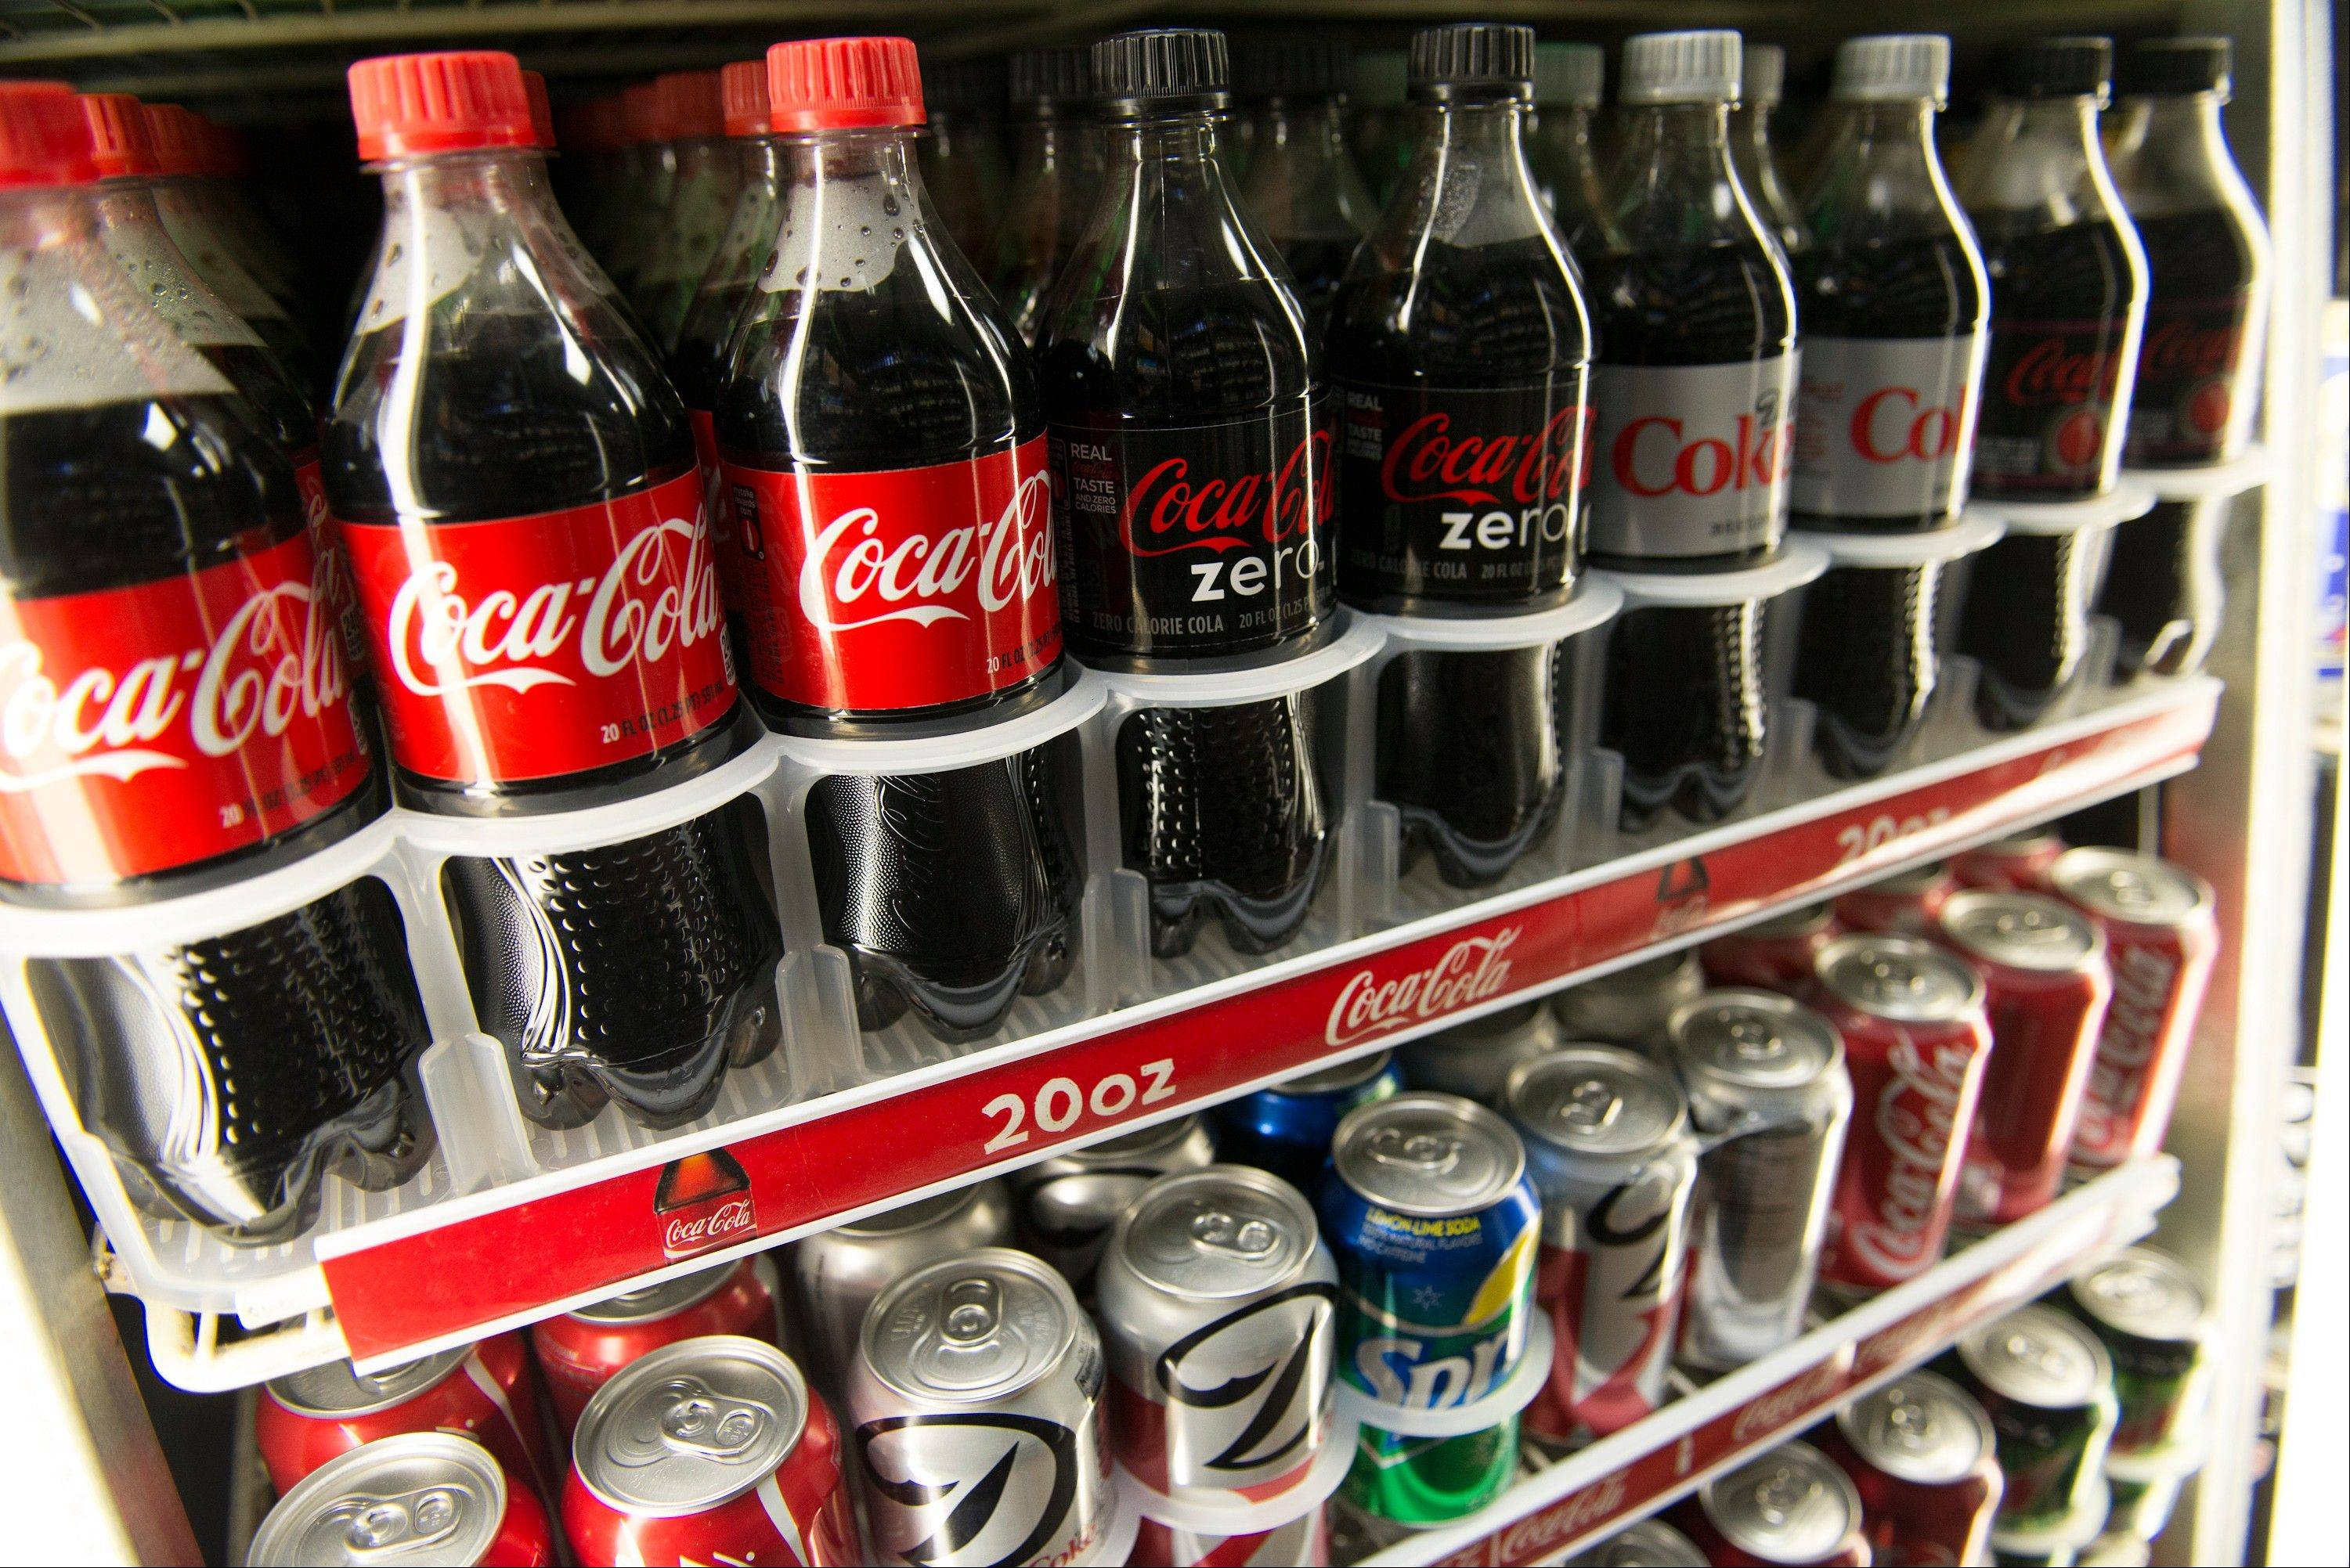 Chinese authorities are investigating whether Coca-Cola Co. employees improperly used location-finding technology in violation of restrictions on map-making.